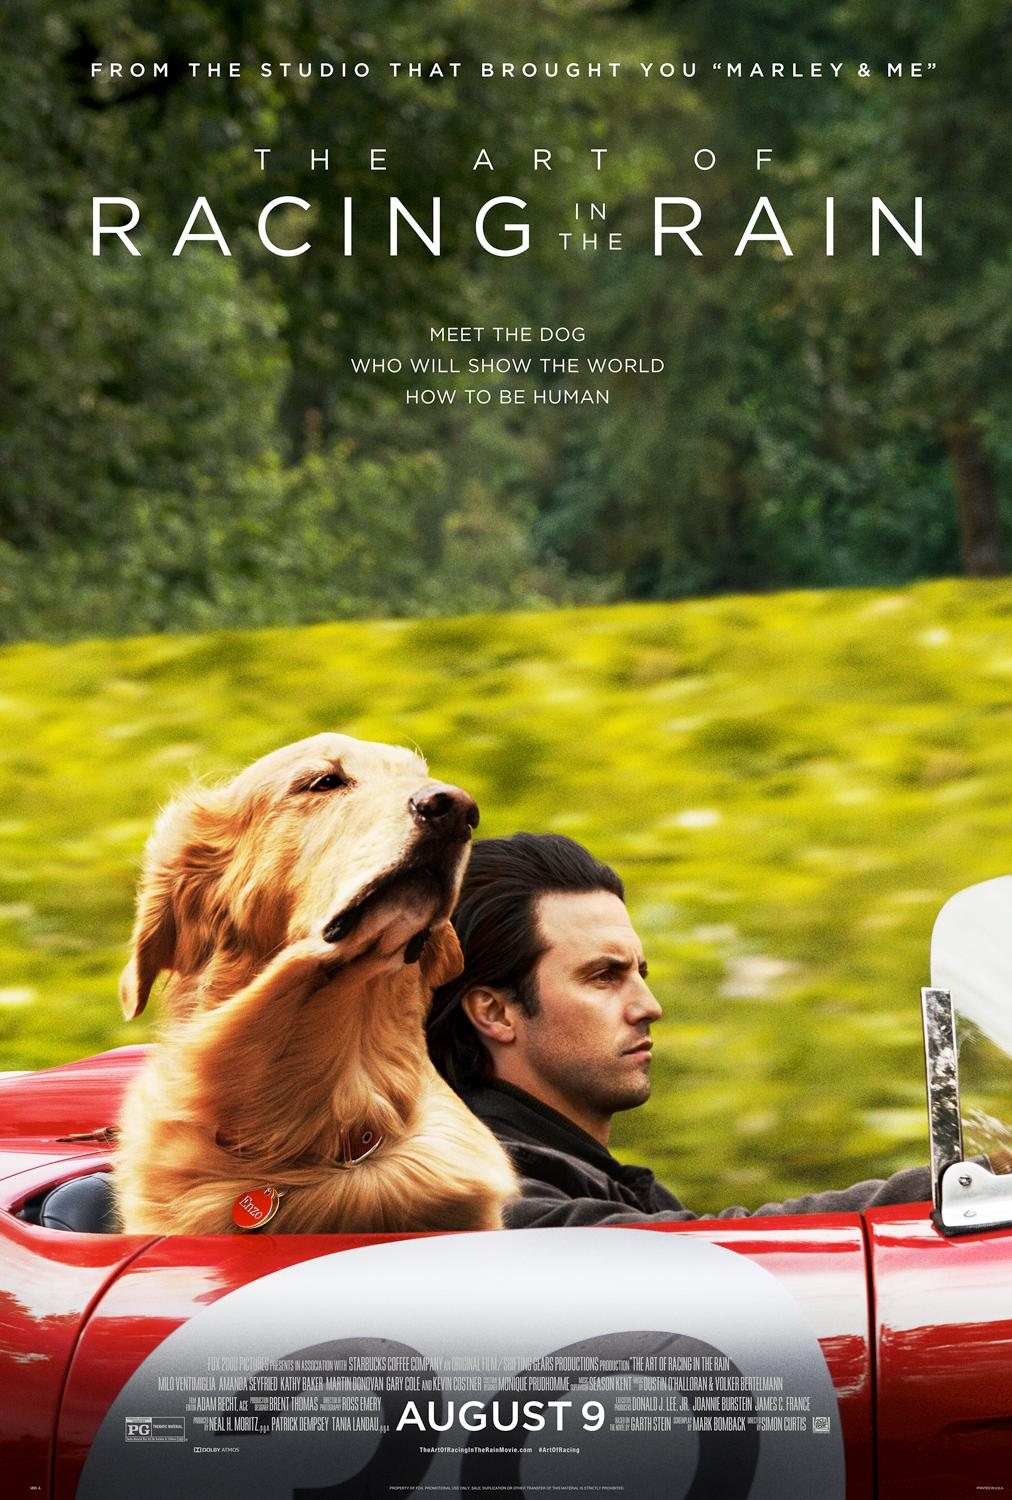 If you love dogs, this movie is for you!